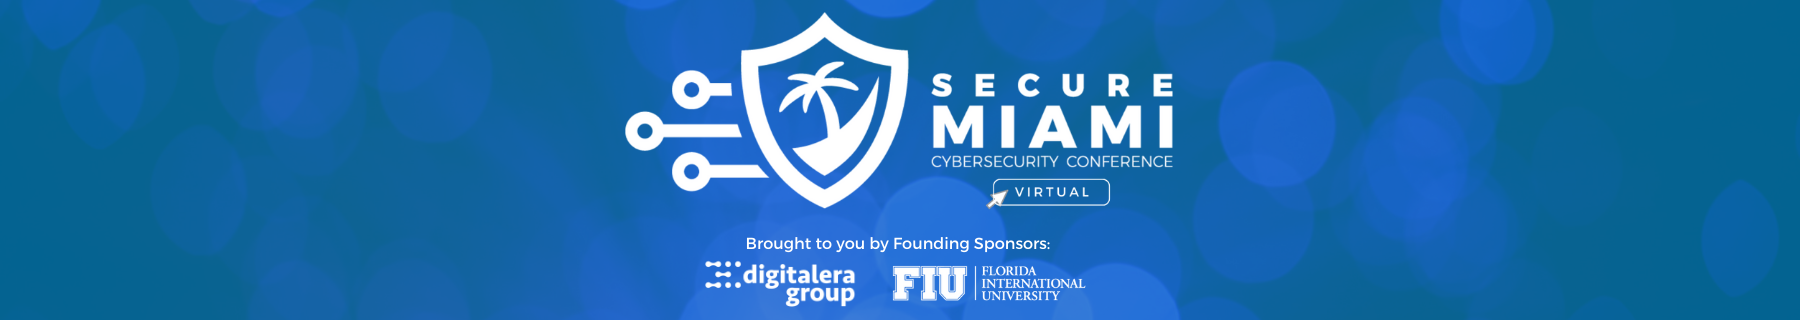 FIU and DigitalEra Group Hosts Fifth Annual Secure Miami Conference